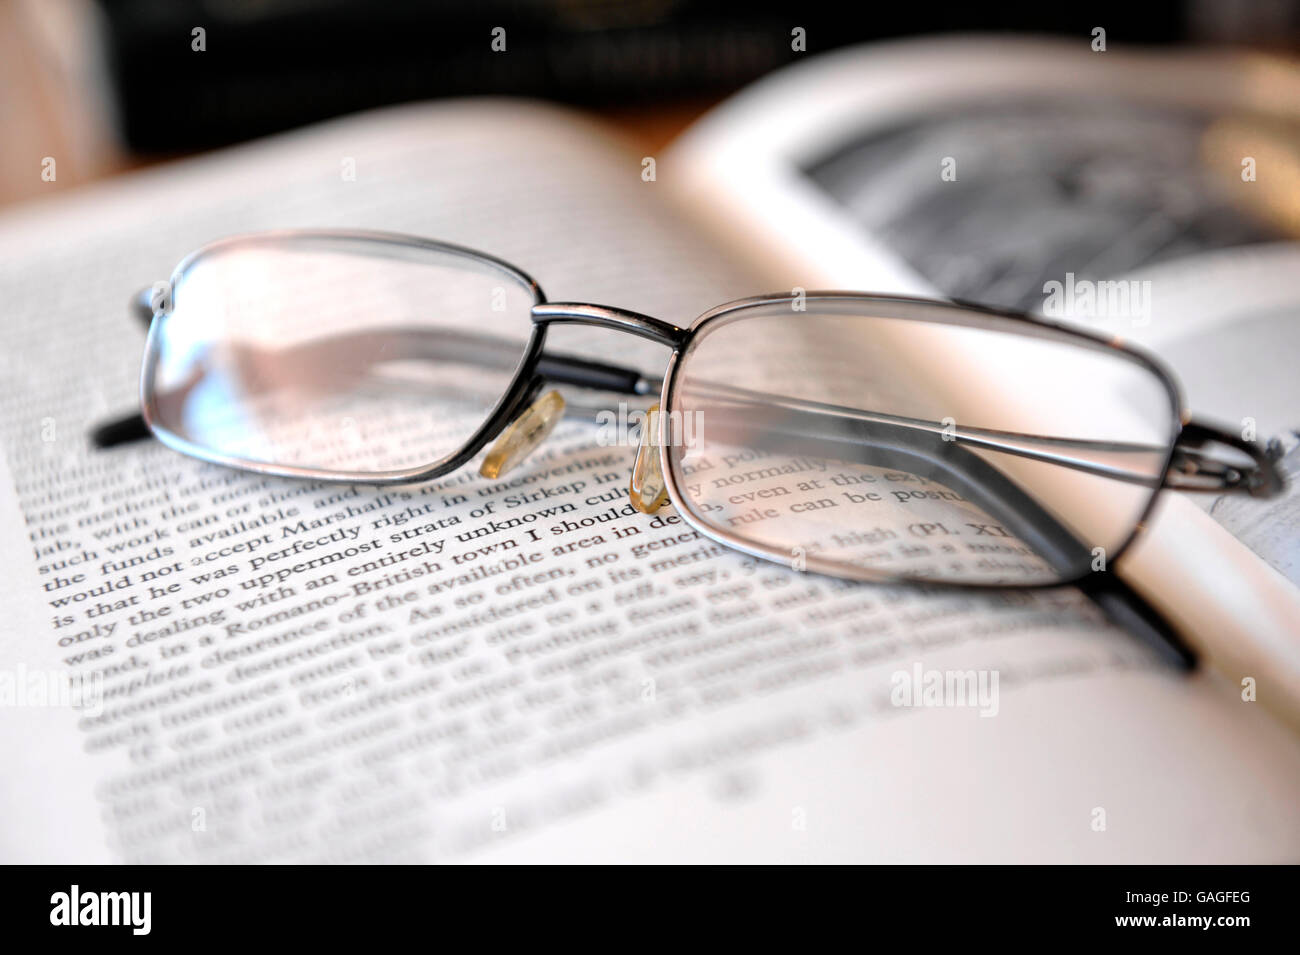 Reading glasses on top of book of antiquity - Stock Image